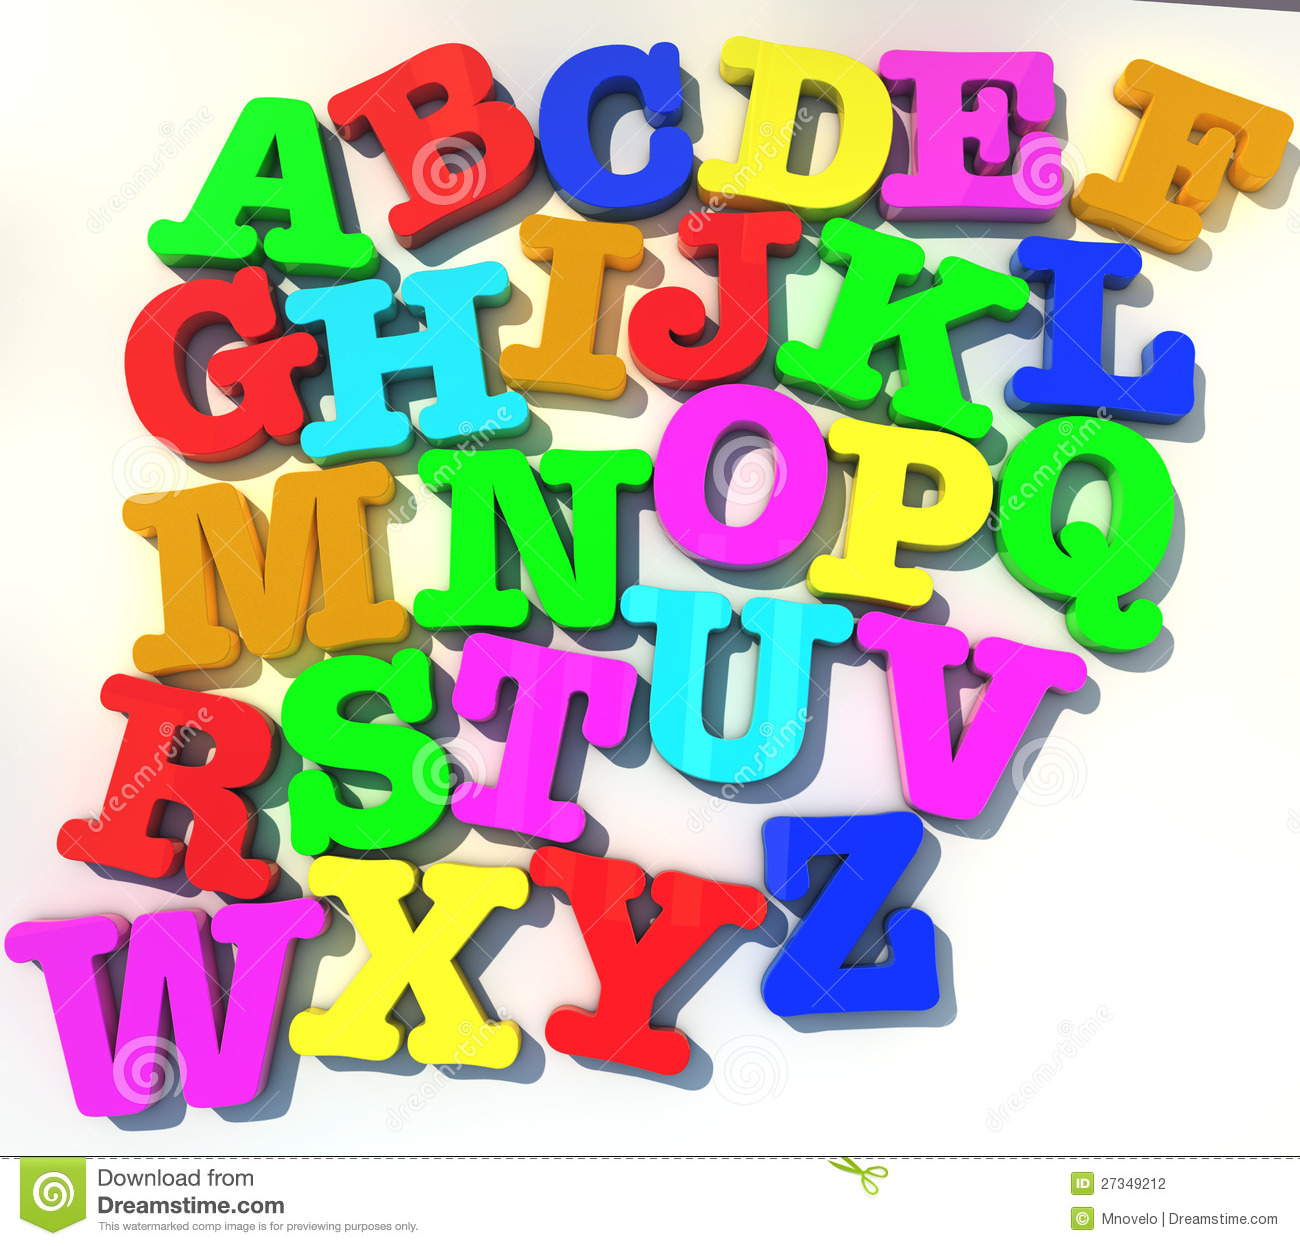 Abcd Alphabet Stock Photography - Image: 27349212